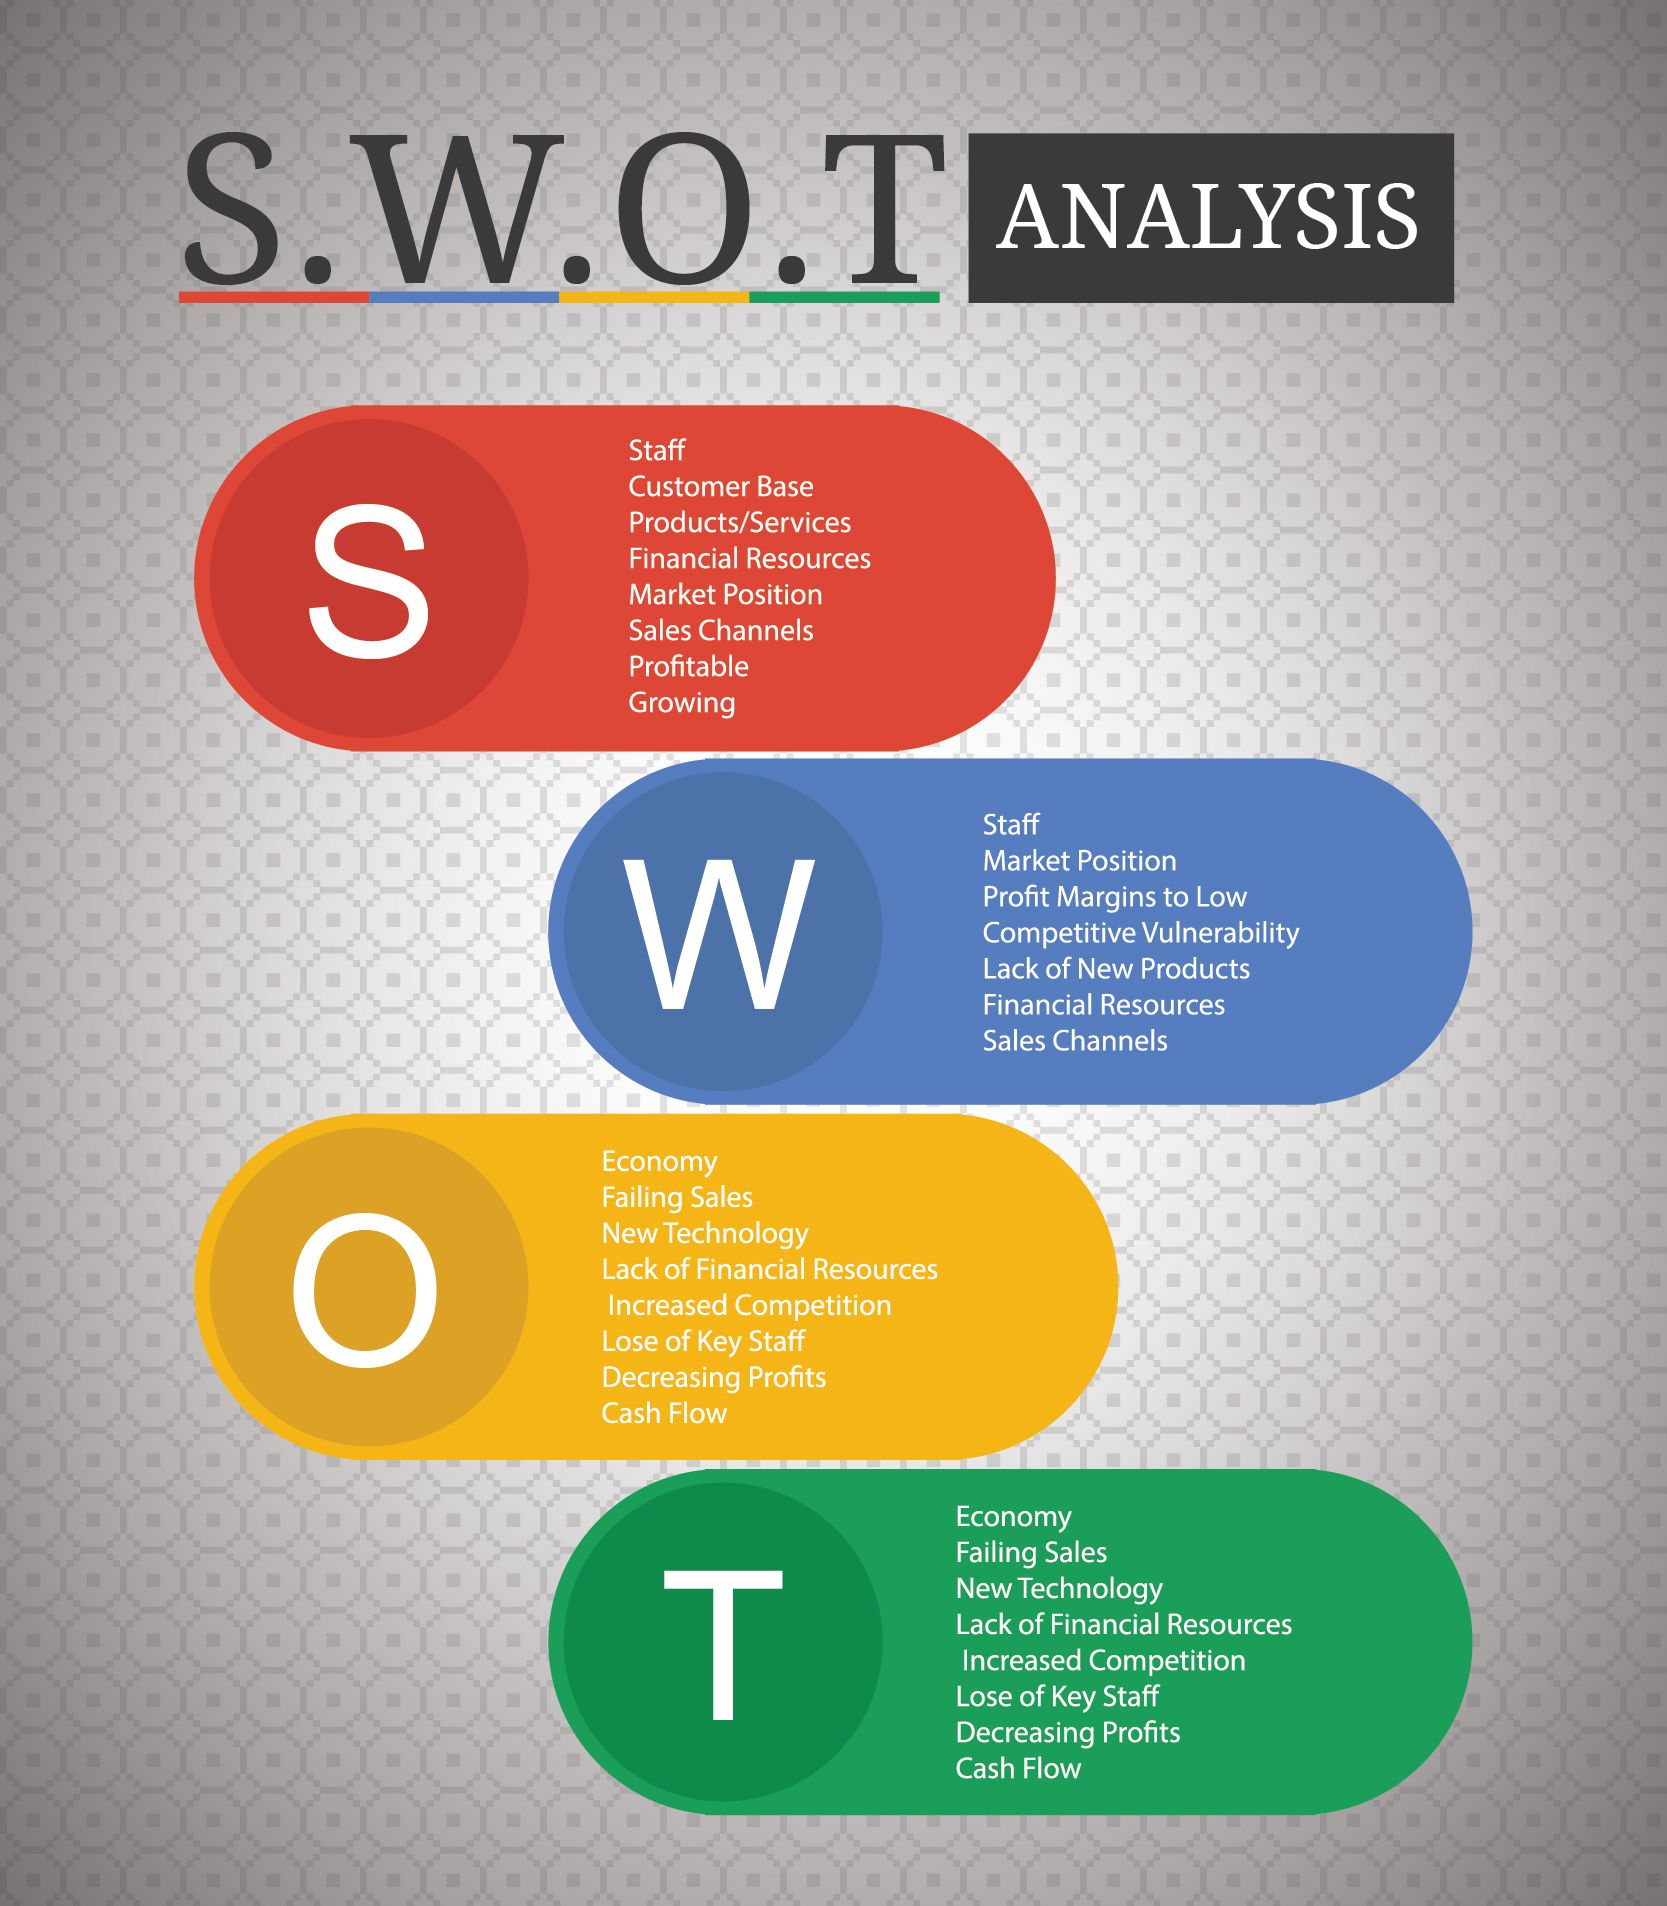 role and components of swot analysis A swot analysis comparing different periods of time can be used in project evaluations to determine the components of the project which should be strengthened in the future swot analysis can also enable stakeholders to undertake a study of the project's context by themselves.